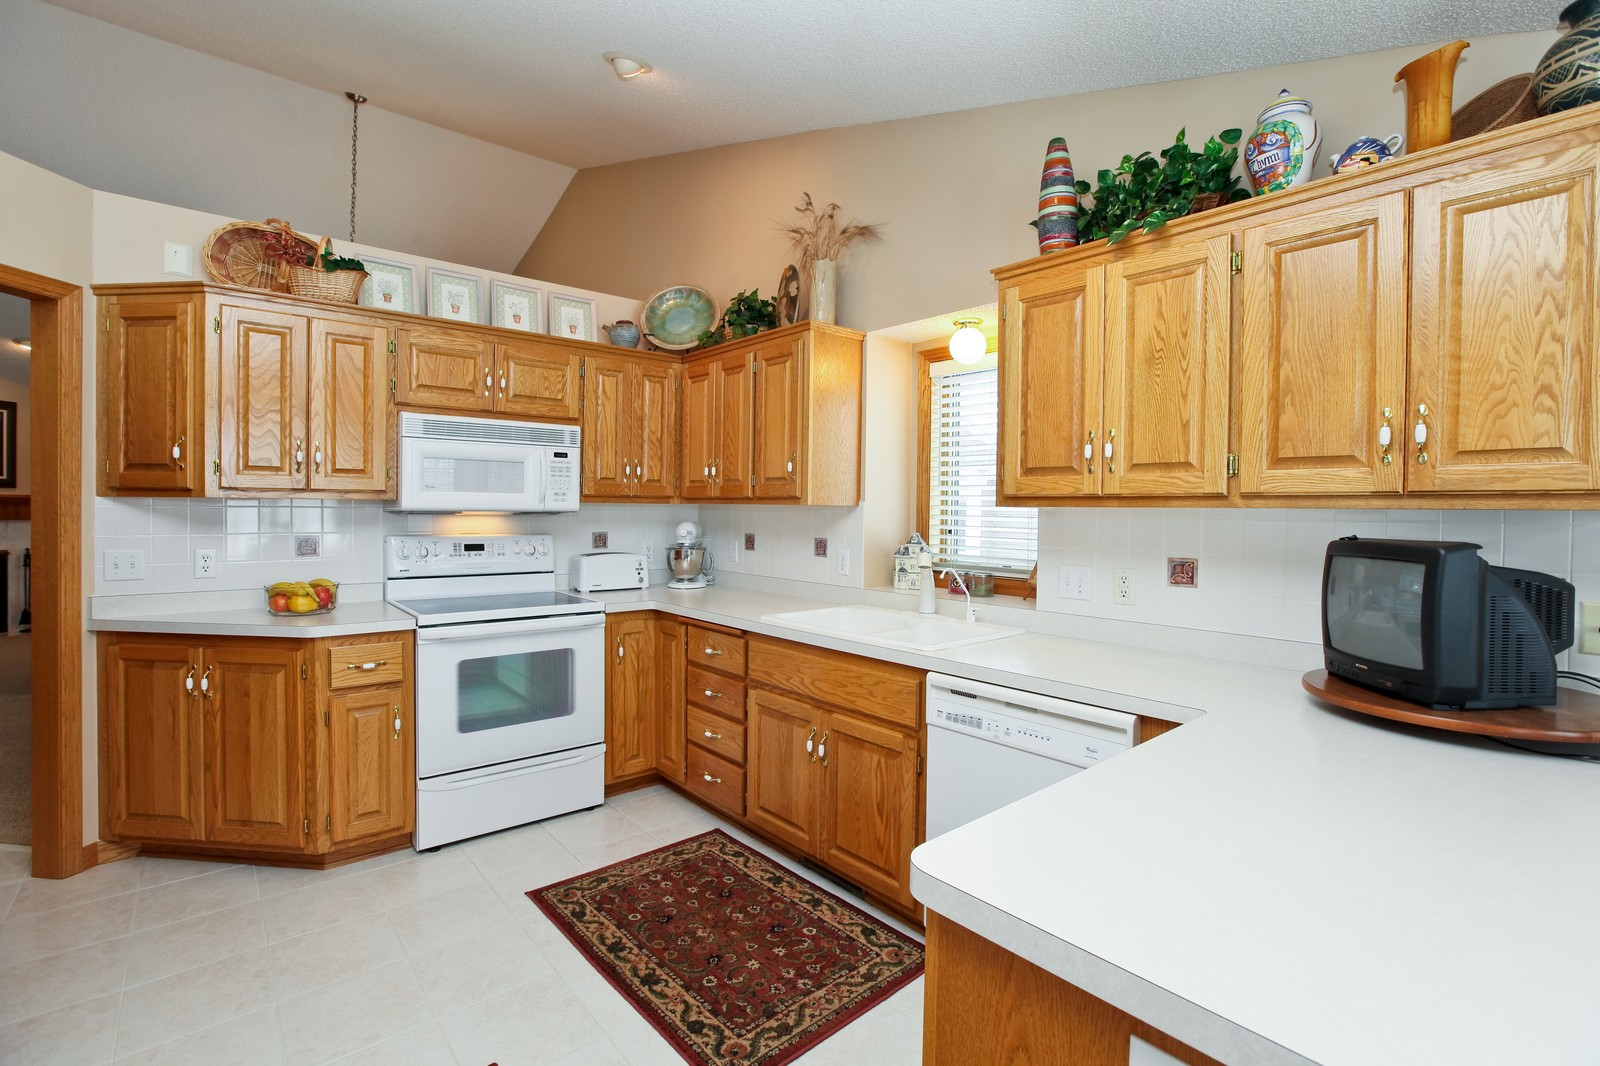 Real Estate Photography - 16020 38th Ave North, Plymouth, MN, 55446 - Kitchen